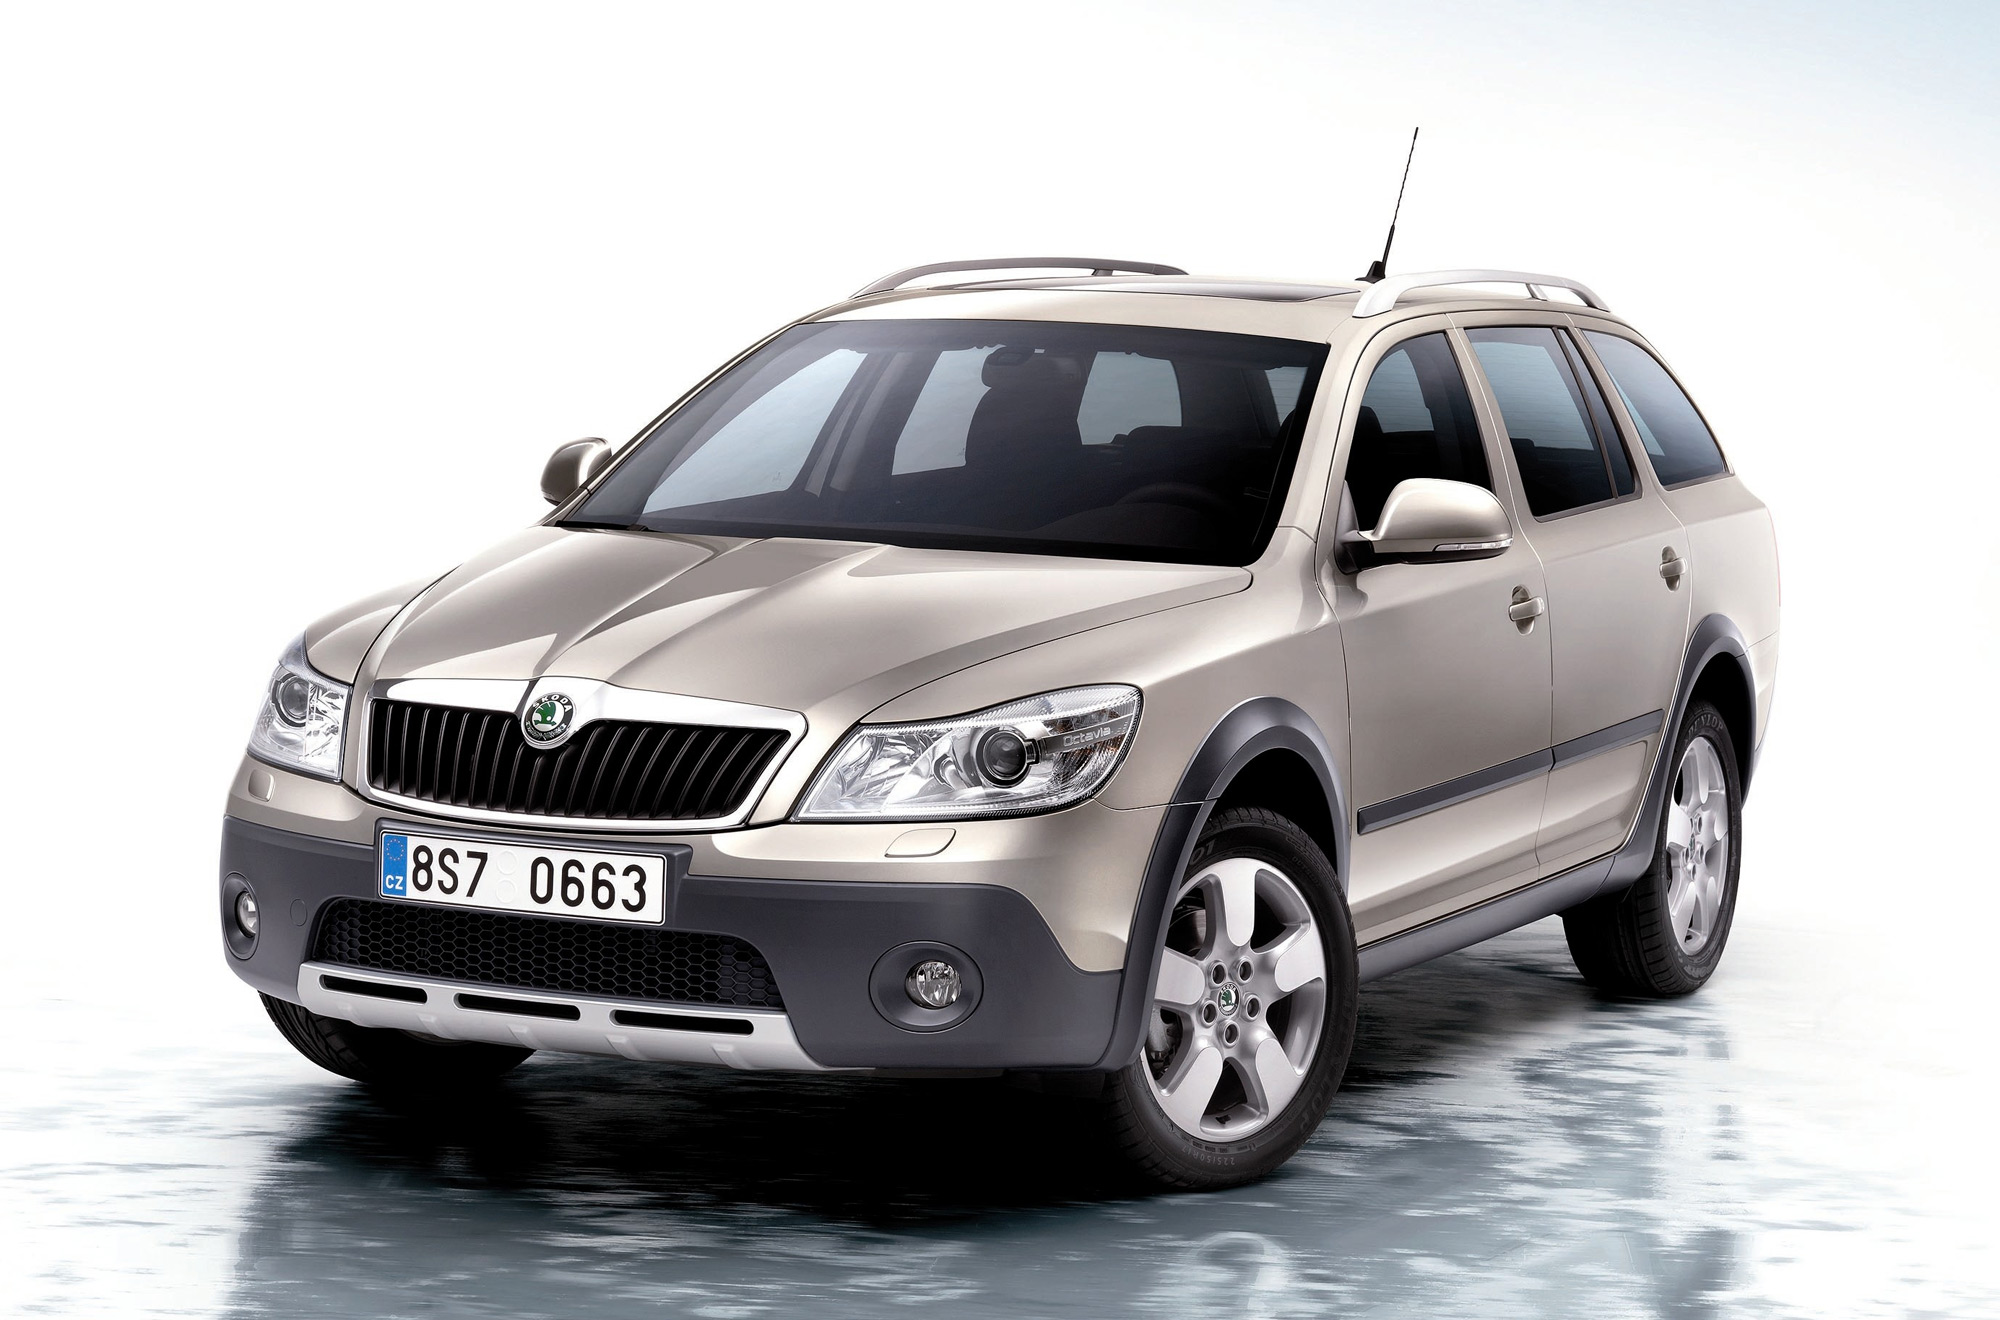 skoda octavia scout photos news reviews specs car listings. Black Bedroom Furniture Sets. Home Design Ideas